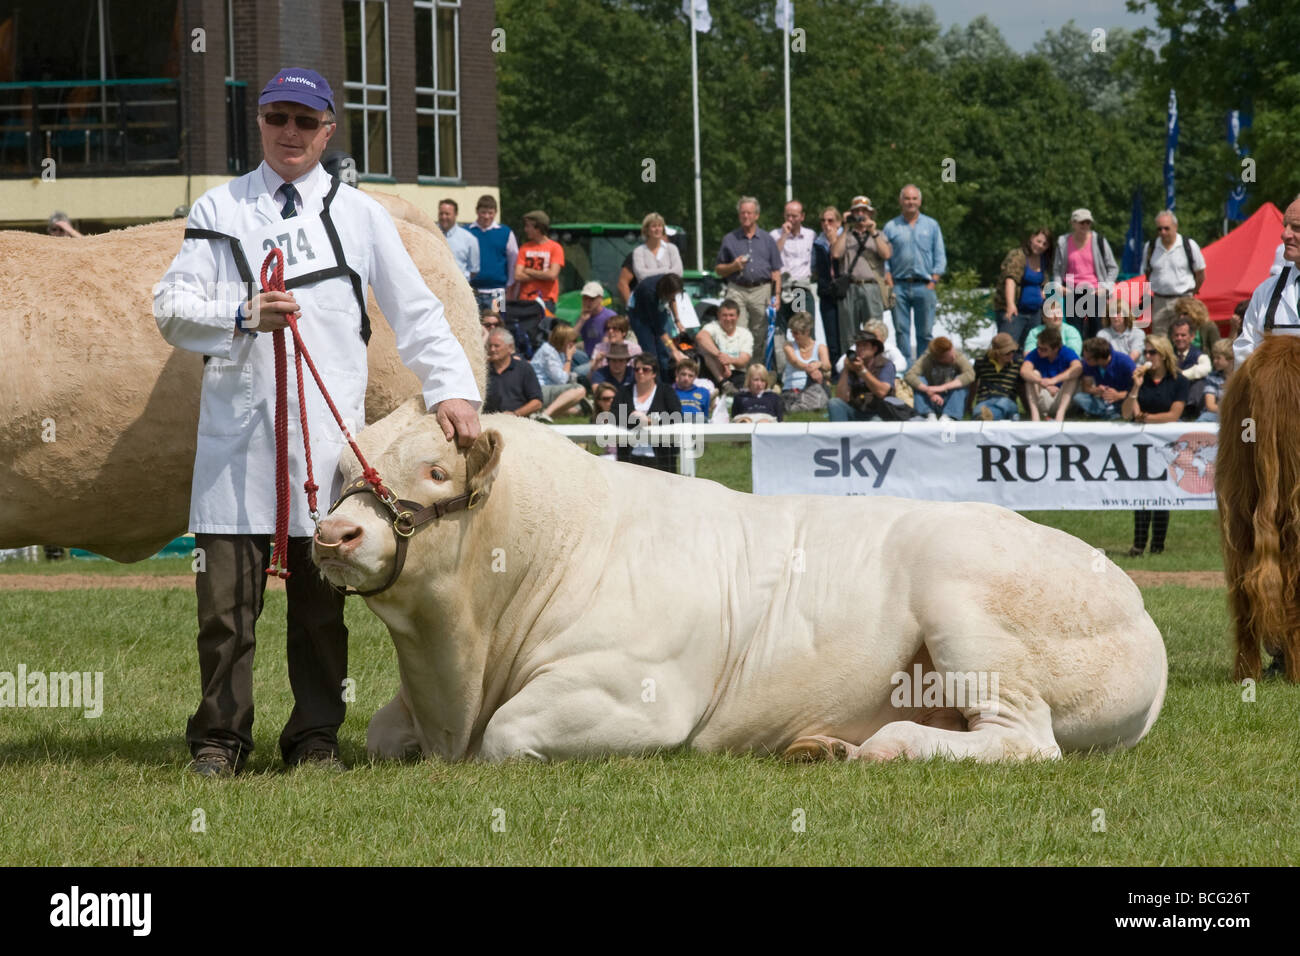 Stockman With His Bull At The Last Royal Show 2009 - Stock Image